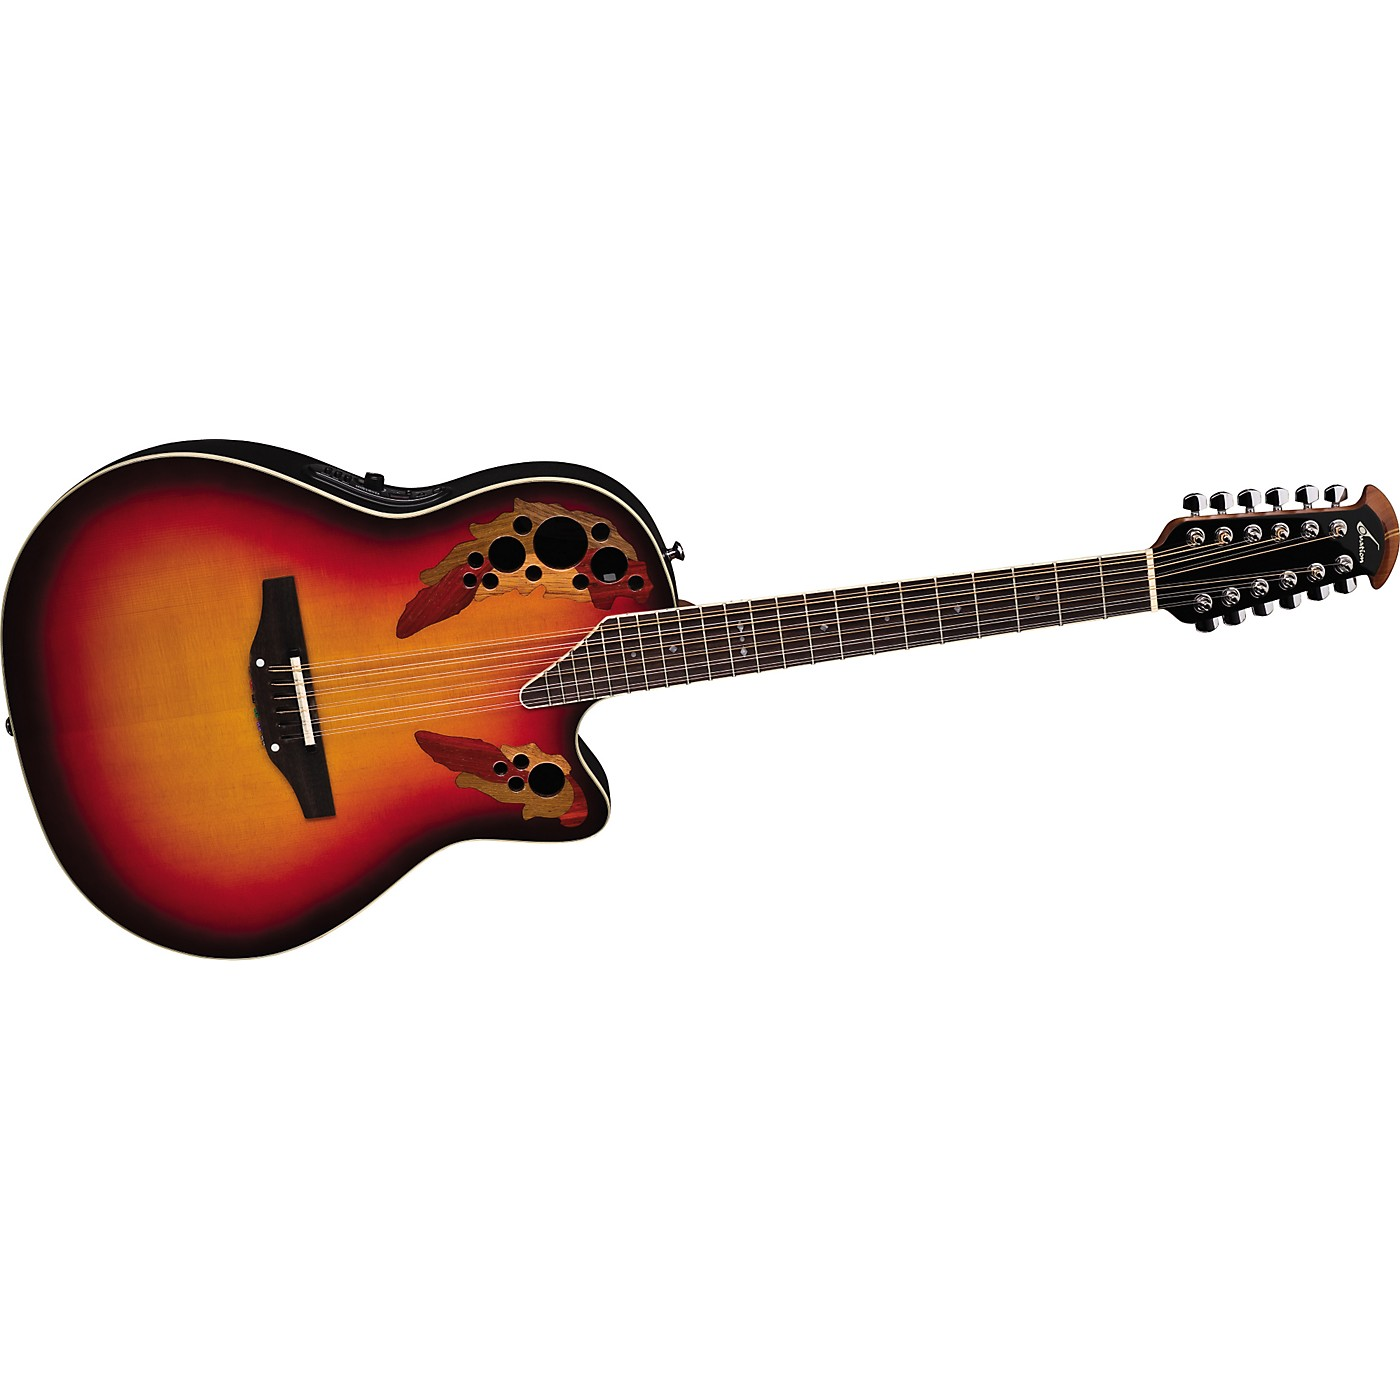 Ovation Standard Elite 2758 AX 12-String Acoustic-Electric Guitar thumbnail